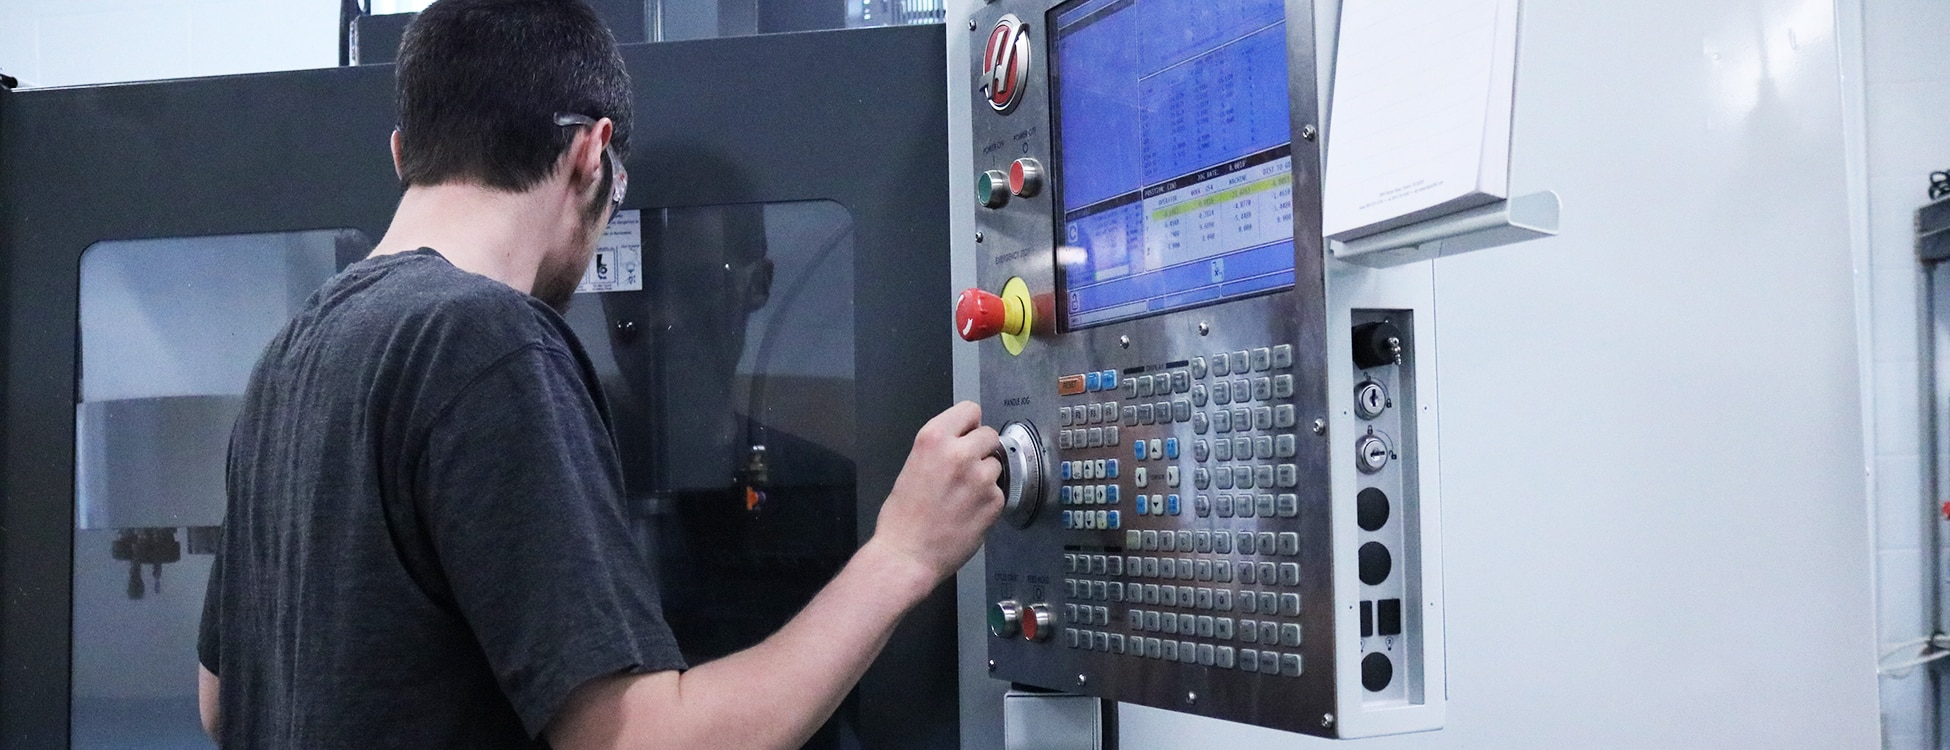 manufacturing engineering technology, mechanical engineering technology, HAAS machinery, buttons